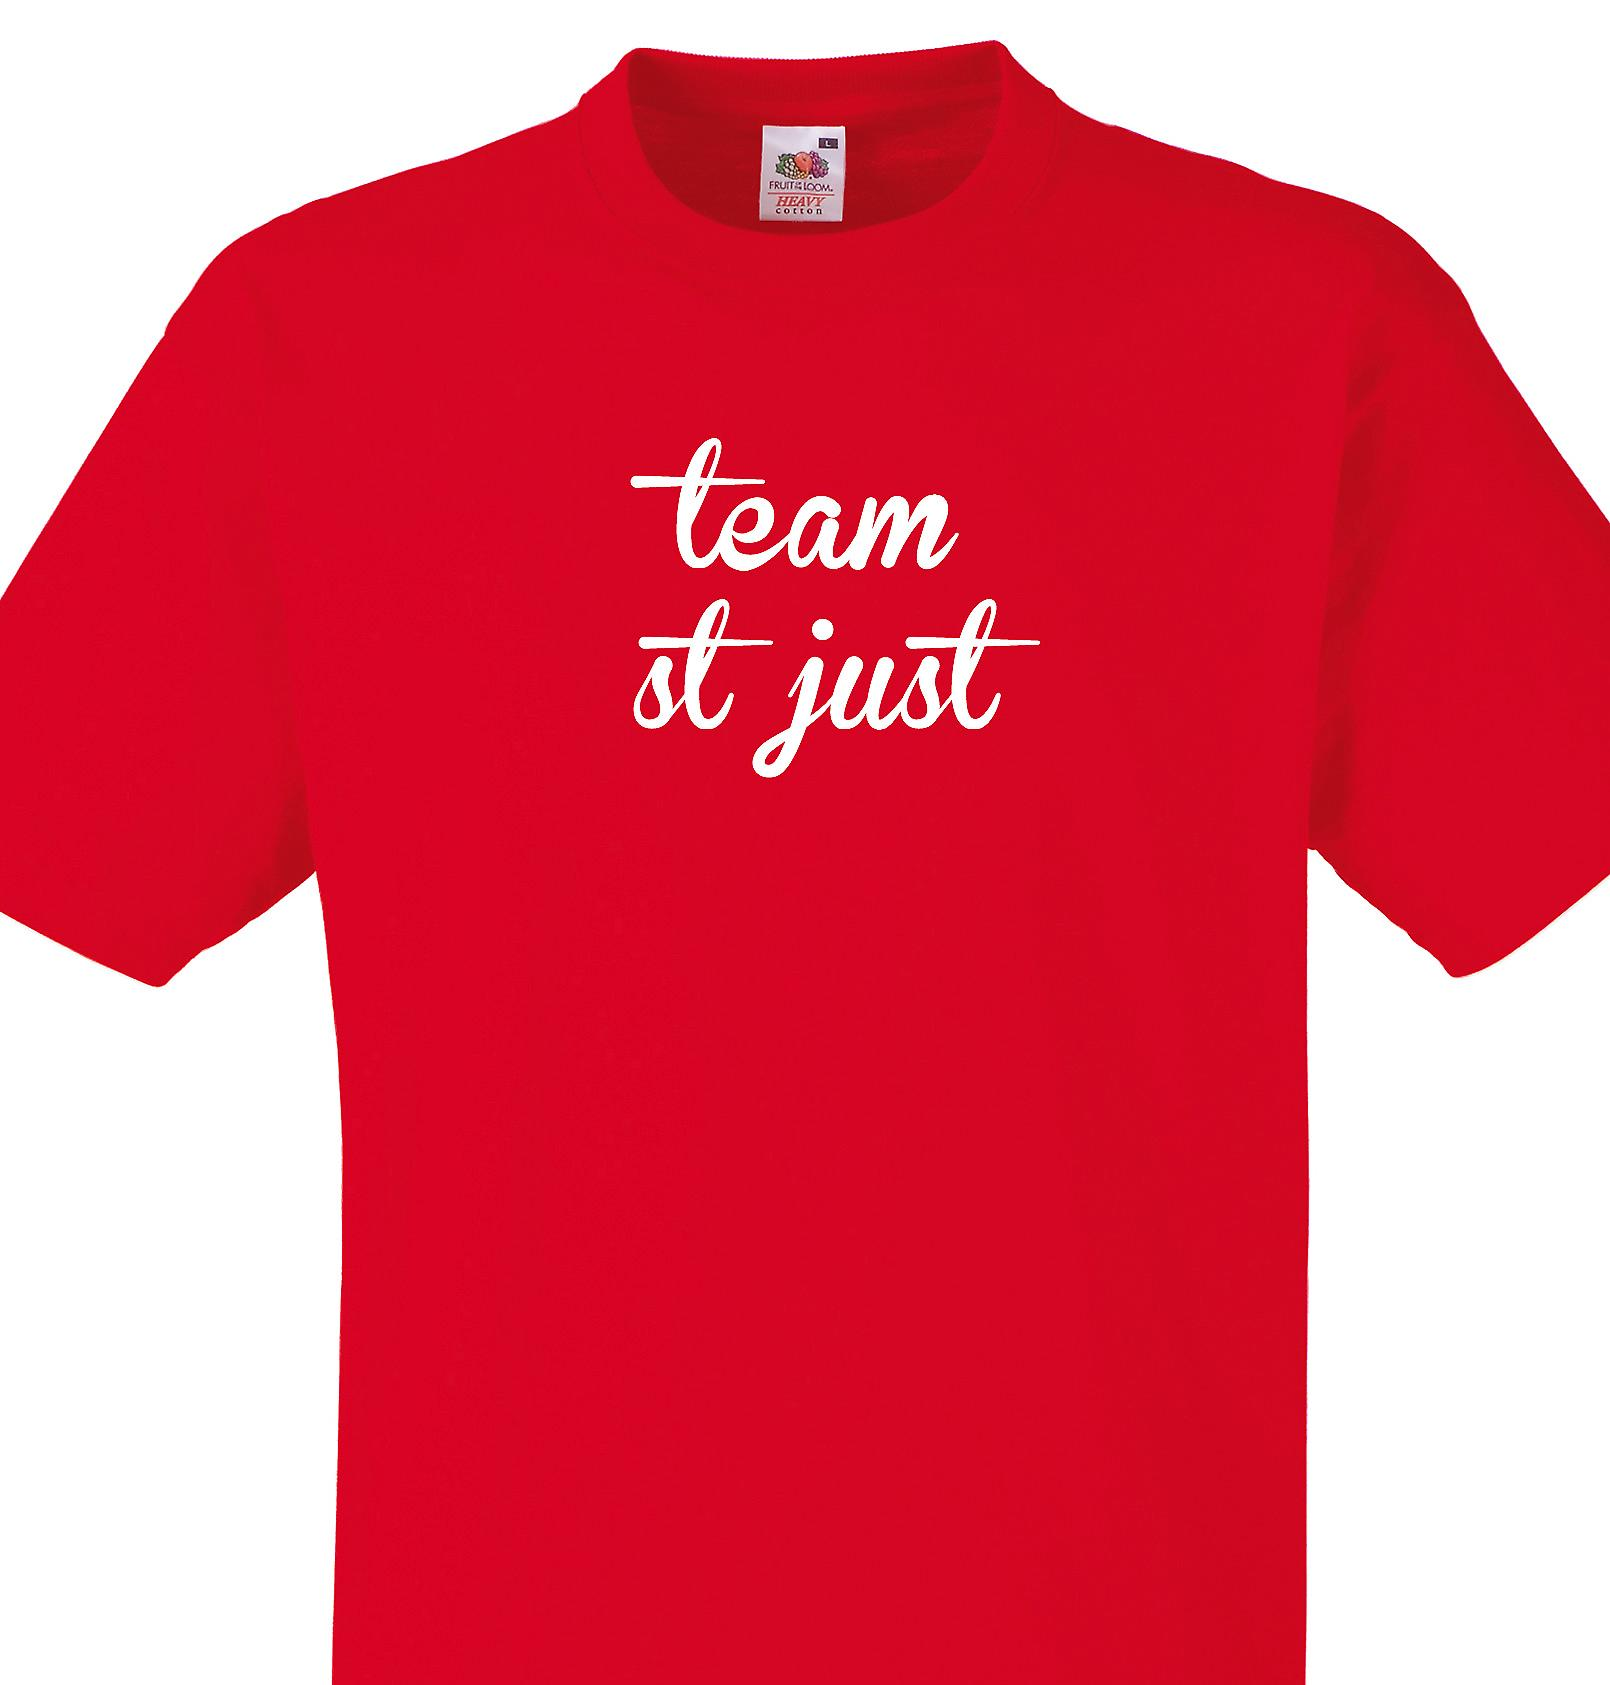 Team St just Red T shirt